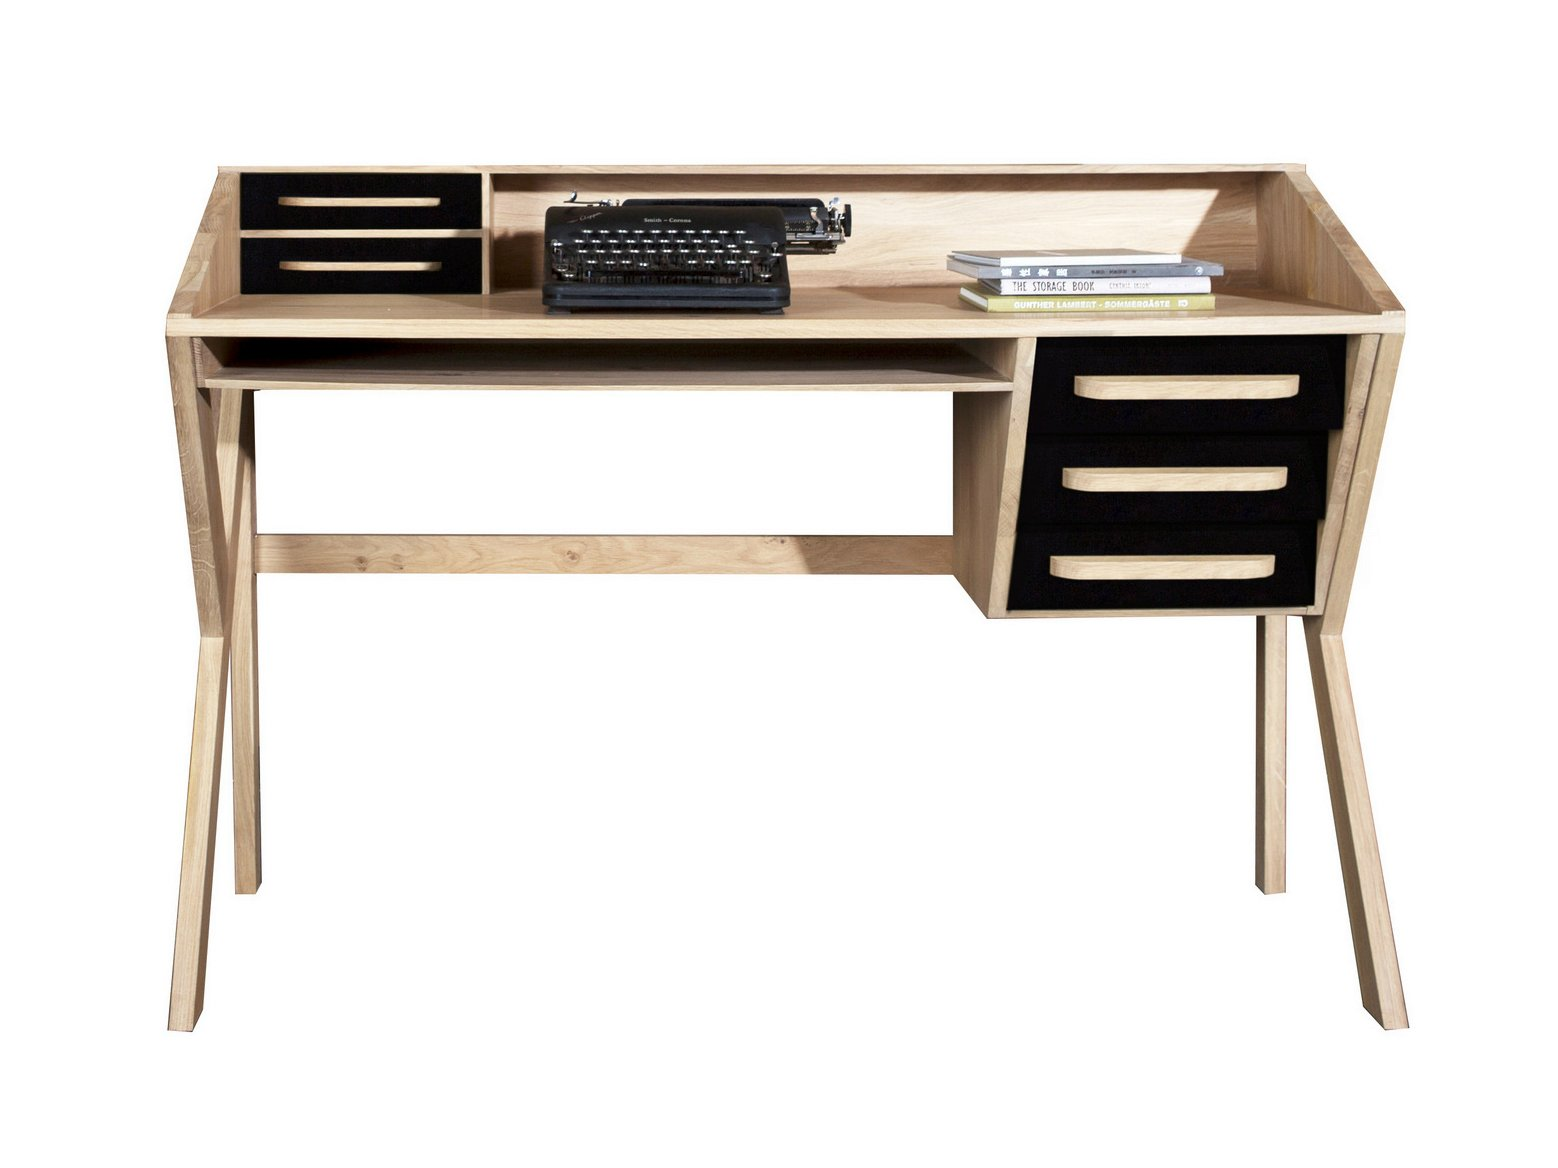 origami writing desk by ethnicraft. Black Bedroom Furniture Sets. Home Design Ideas